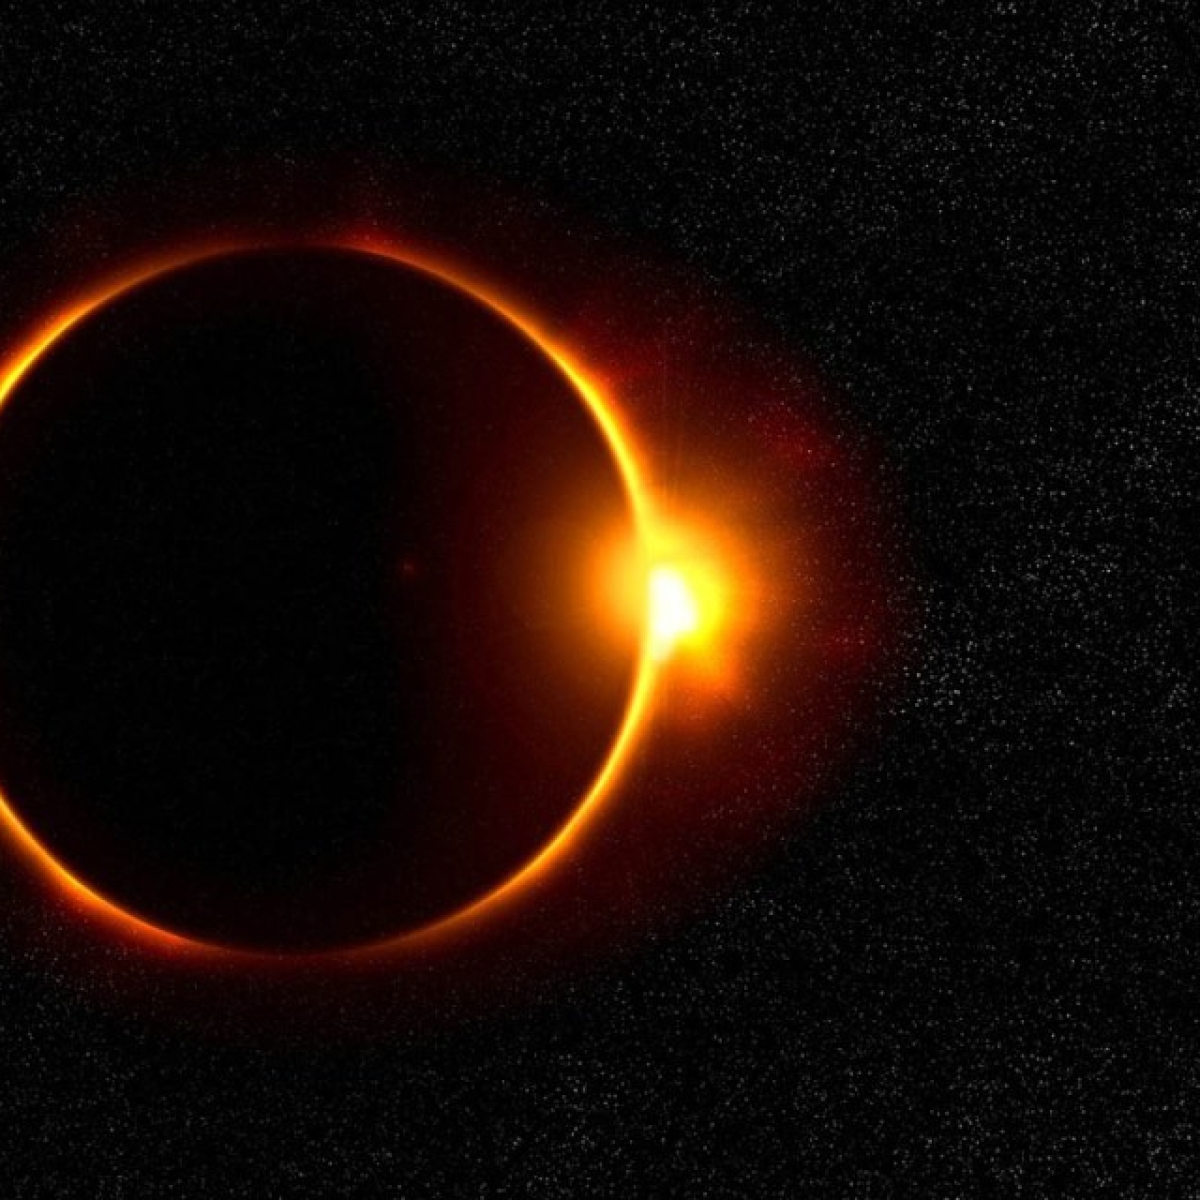 Solar Eclipse on June 21, 2020: What are the food myths associated with eclipse?